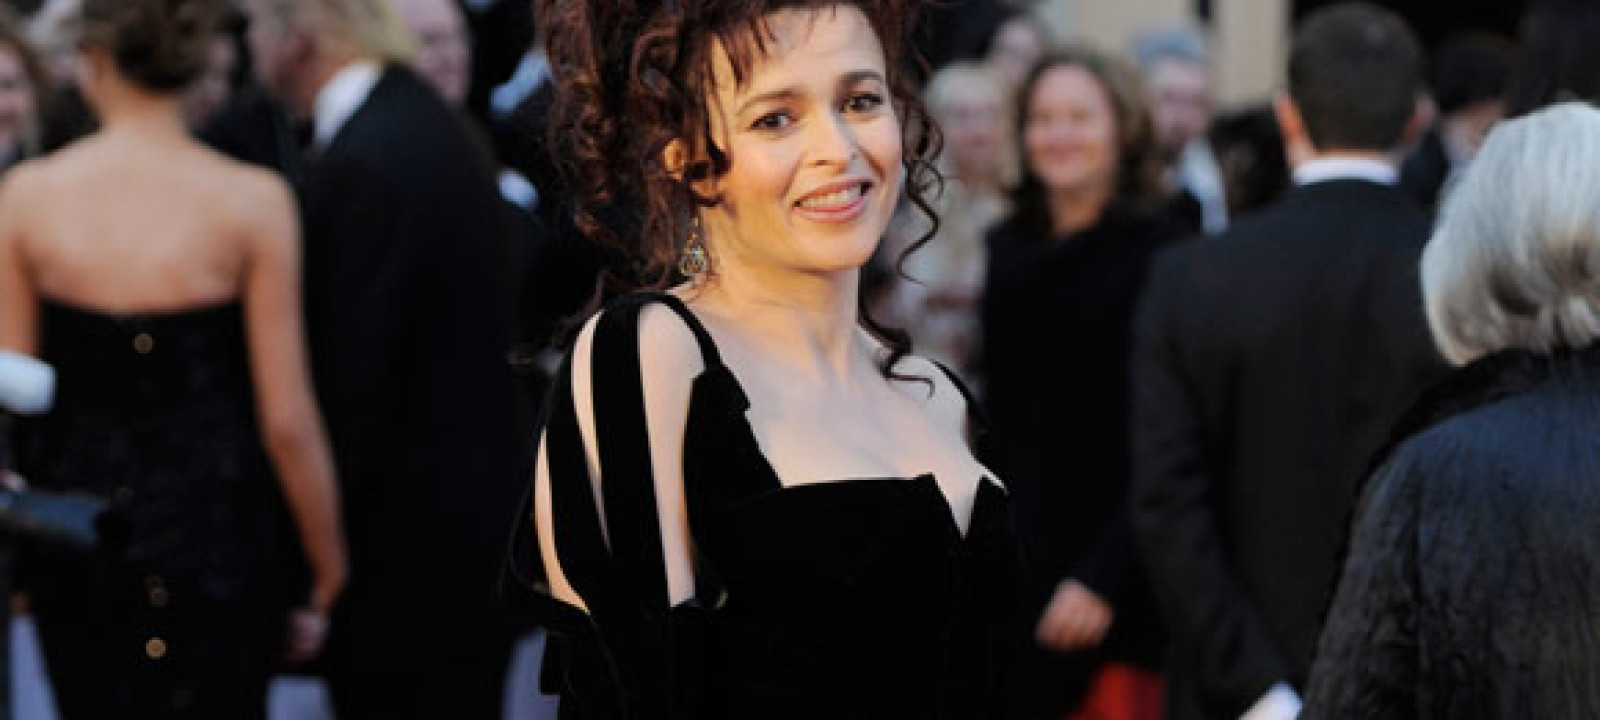 2011: Helena Bonham Carter at the Oscars